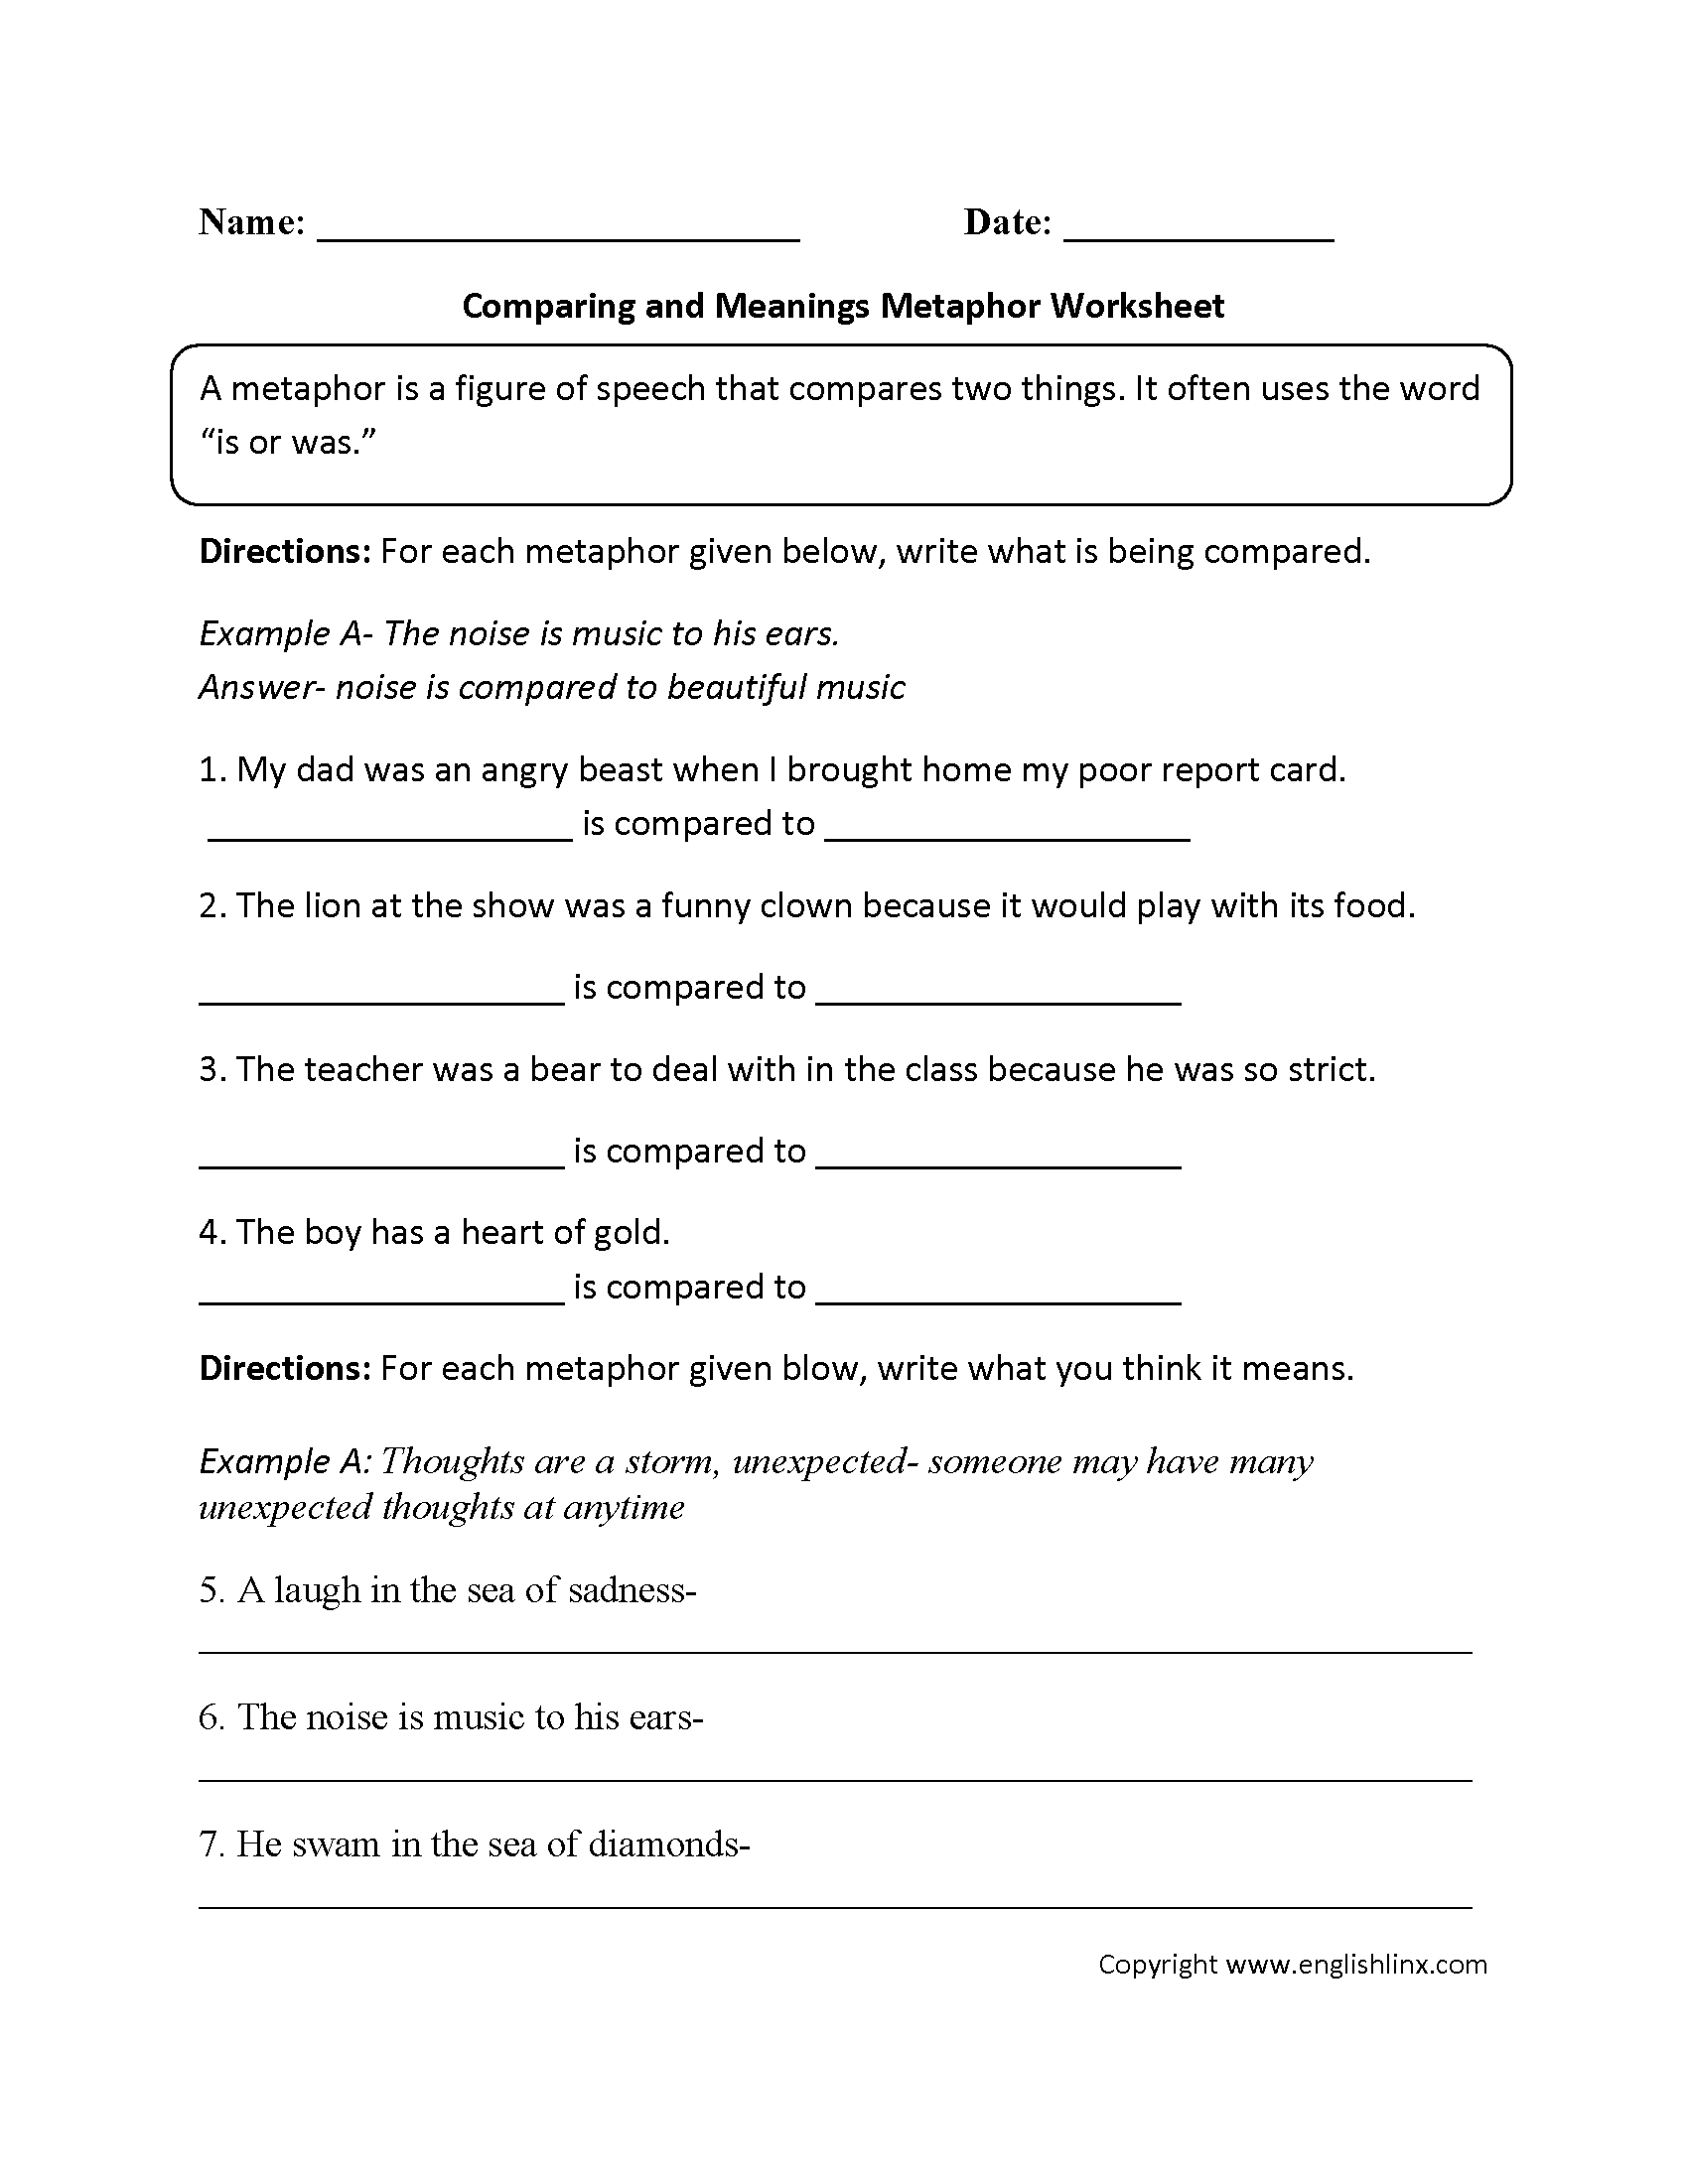 Comparing and Meanings Metaphor Worksheet – Figures of Speech Worksheet